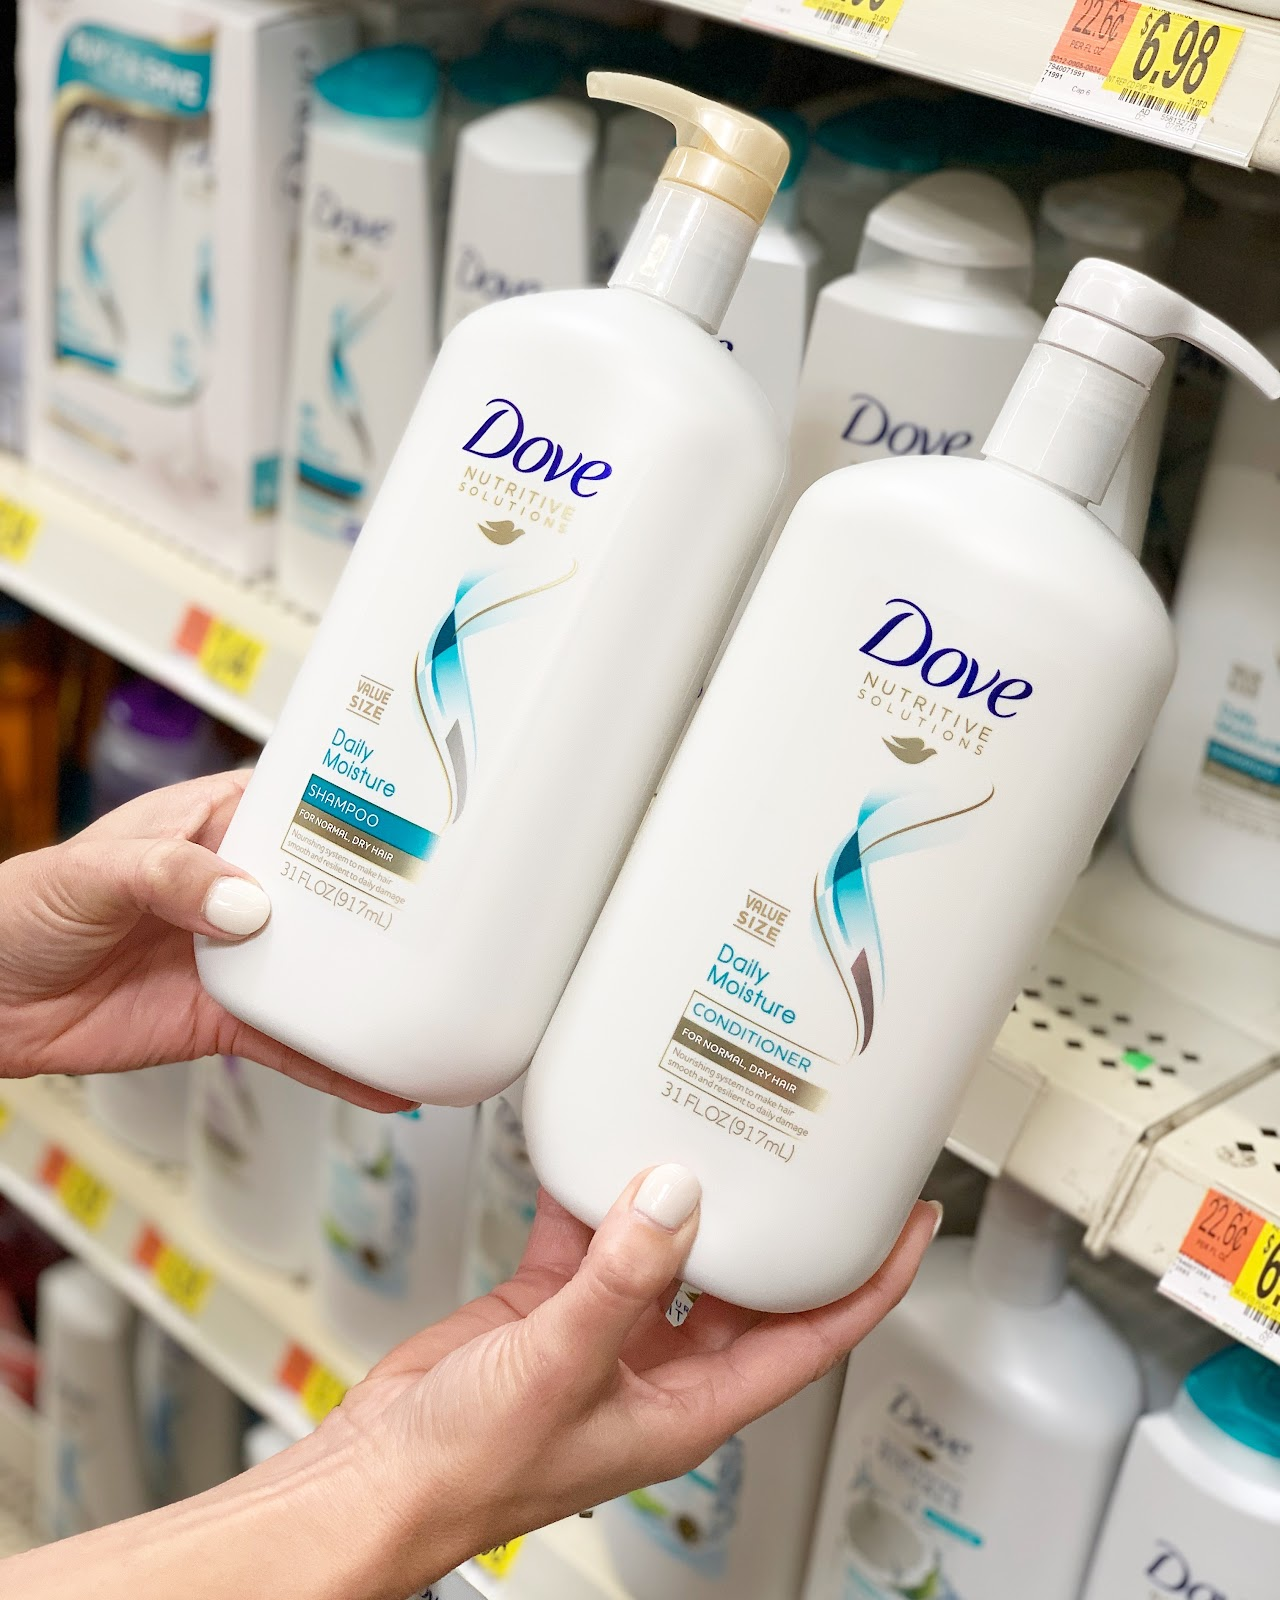 dove nutritive solutions shampoo and conditioner at walmart